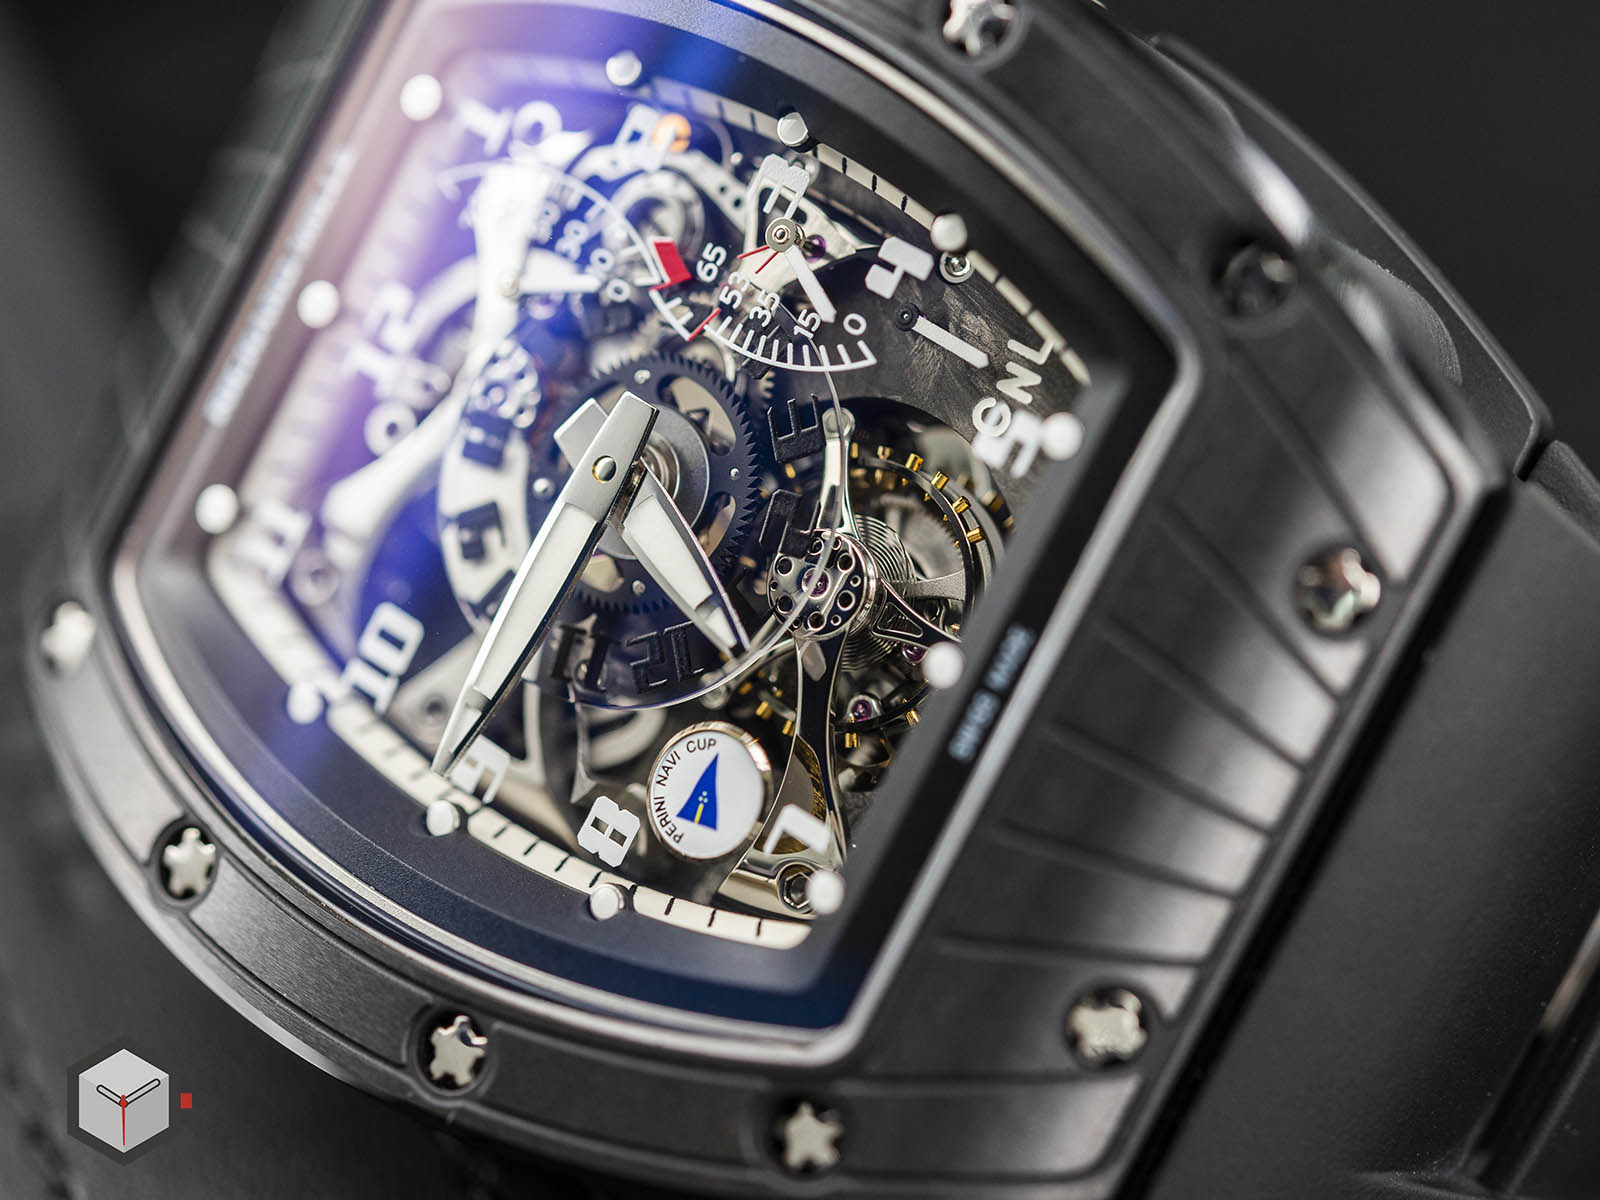 richard-mille-rm015-tourbillon-dual-time-zone-perini-navi-cup-4.jpg